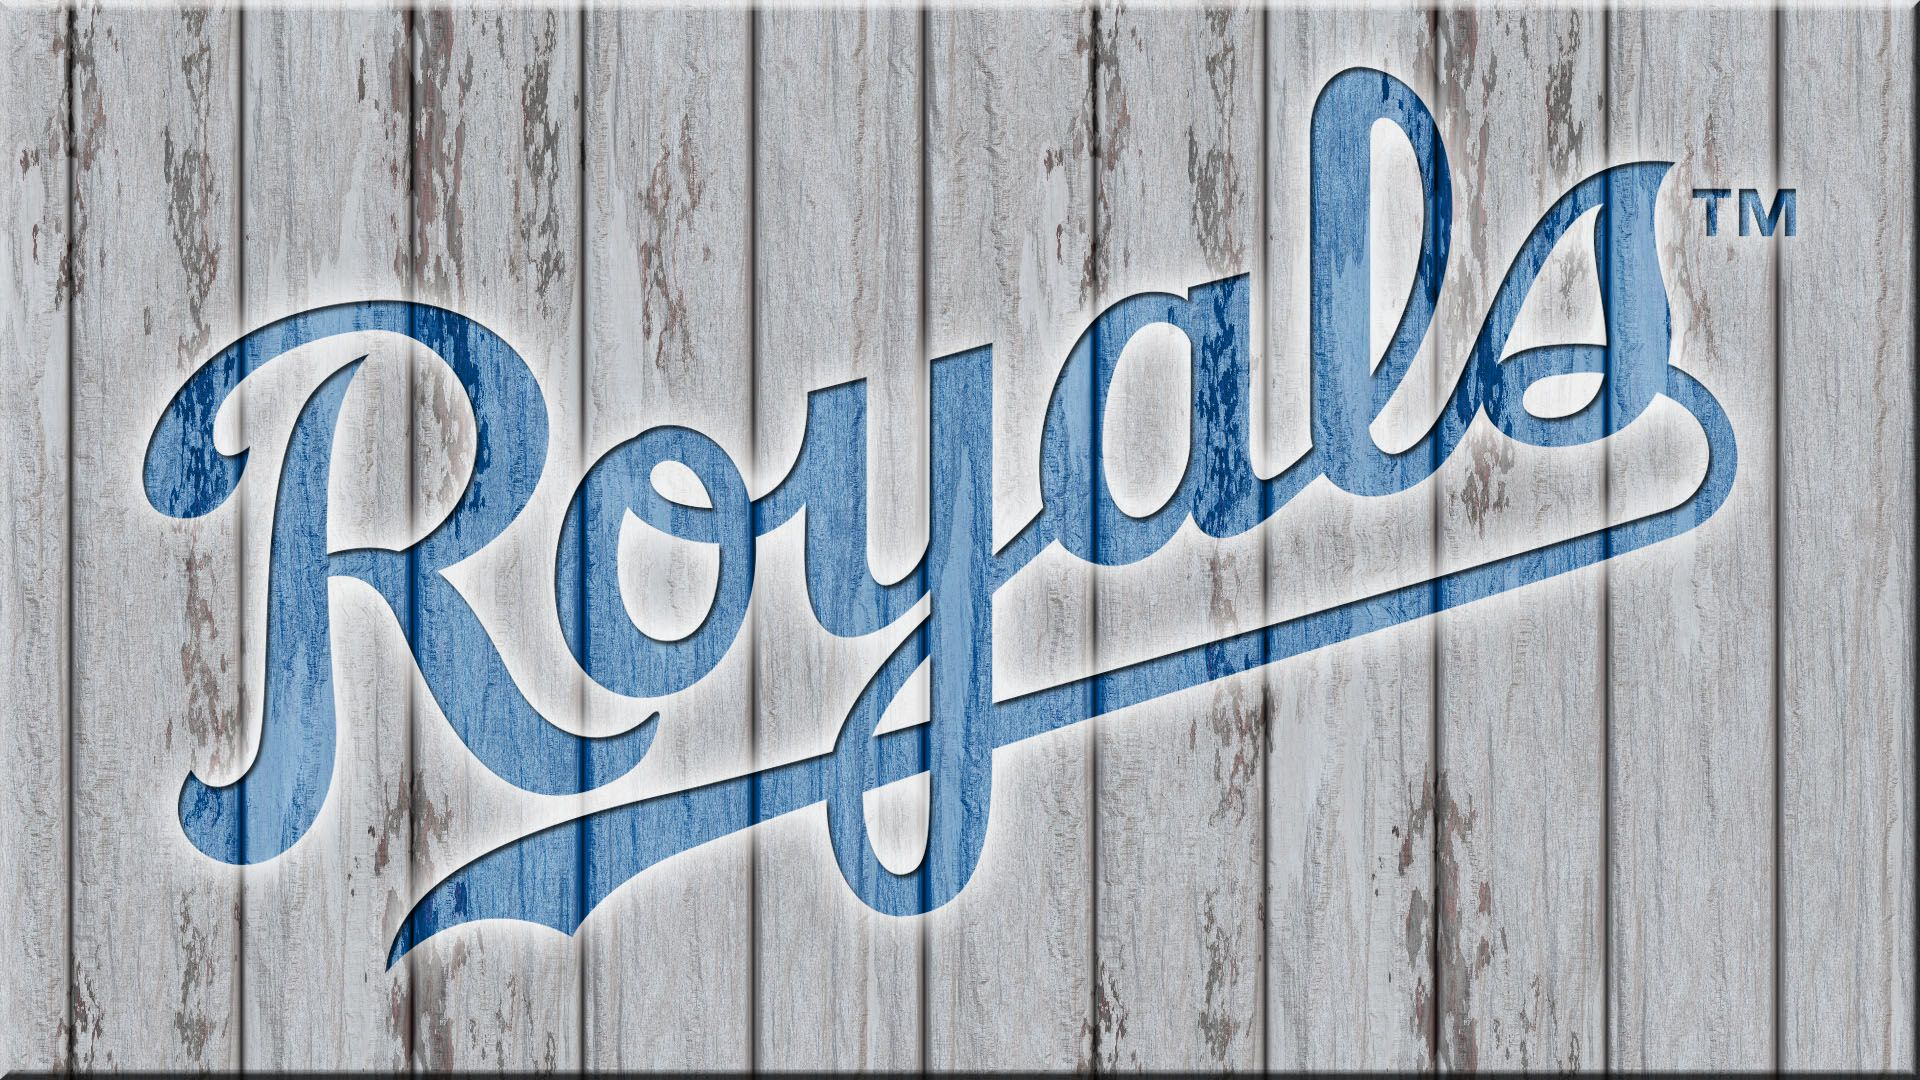 Kc Royals Wallpaper Lock Screen